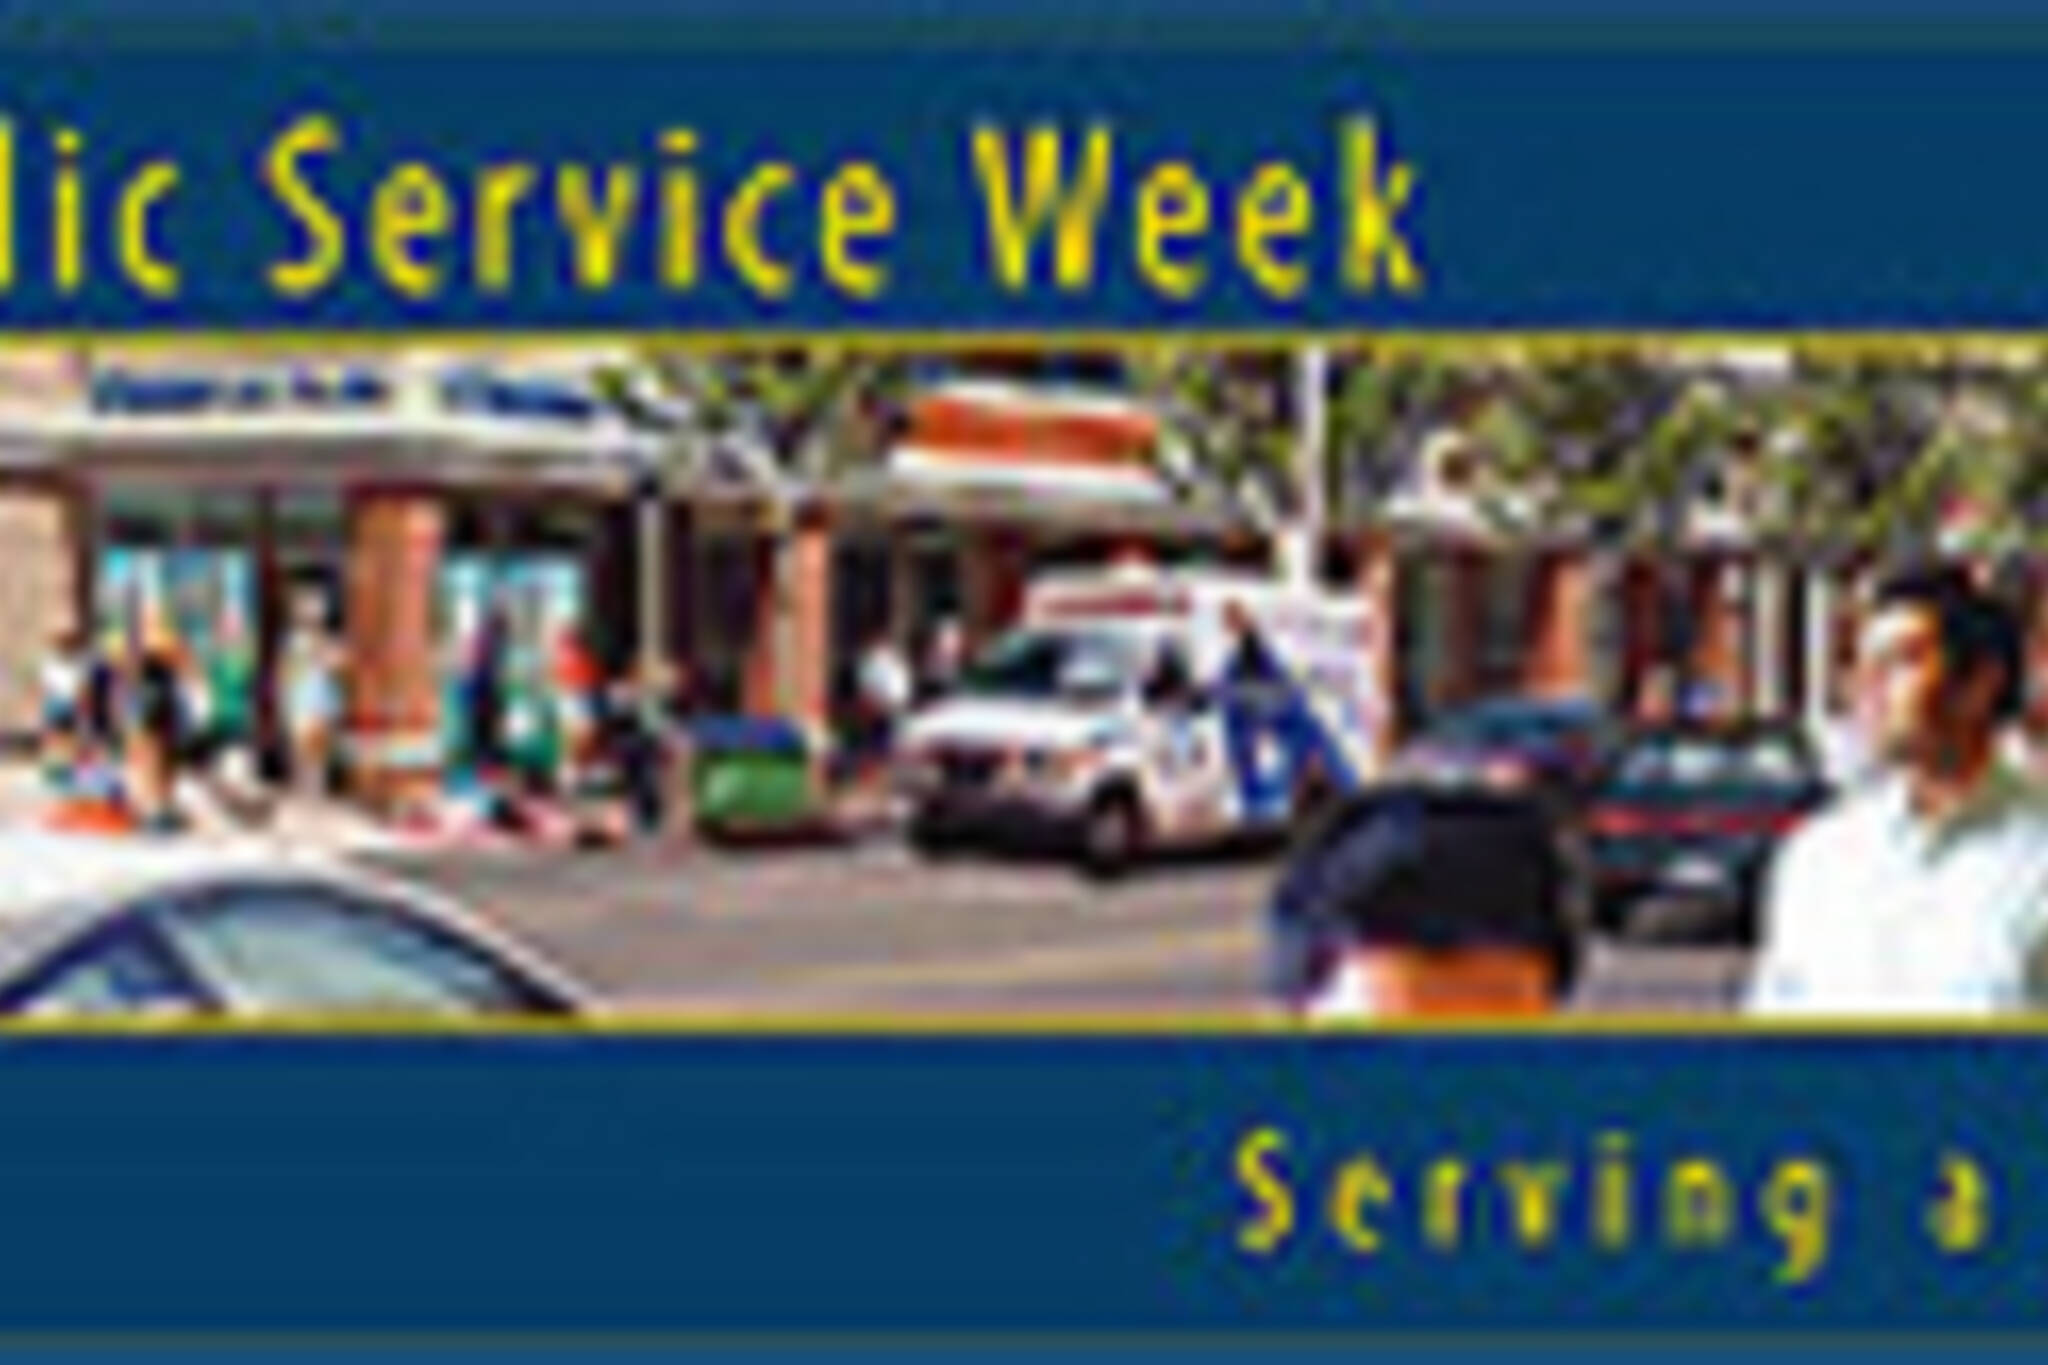 Toronto Public Service Week Kicks Off